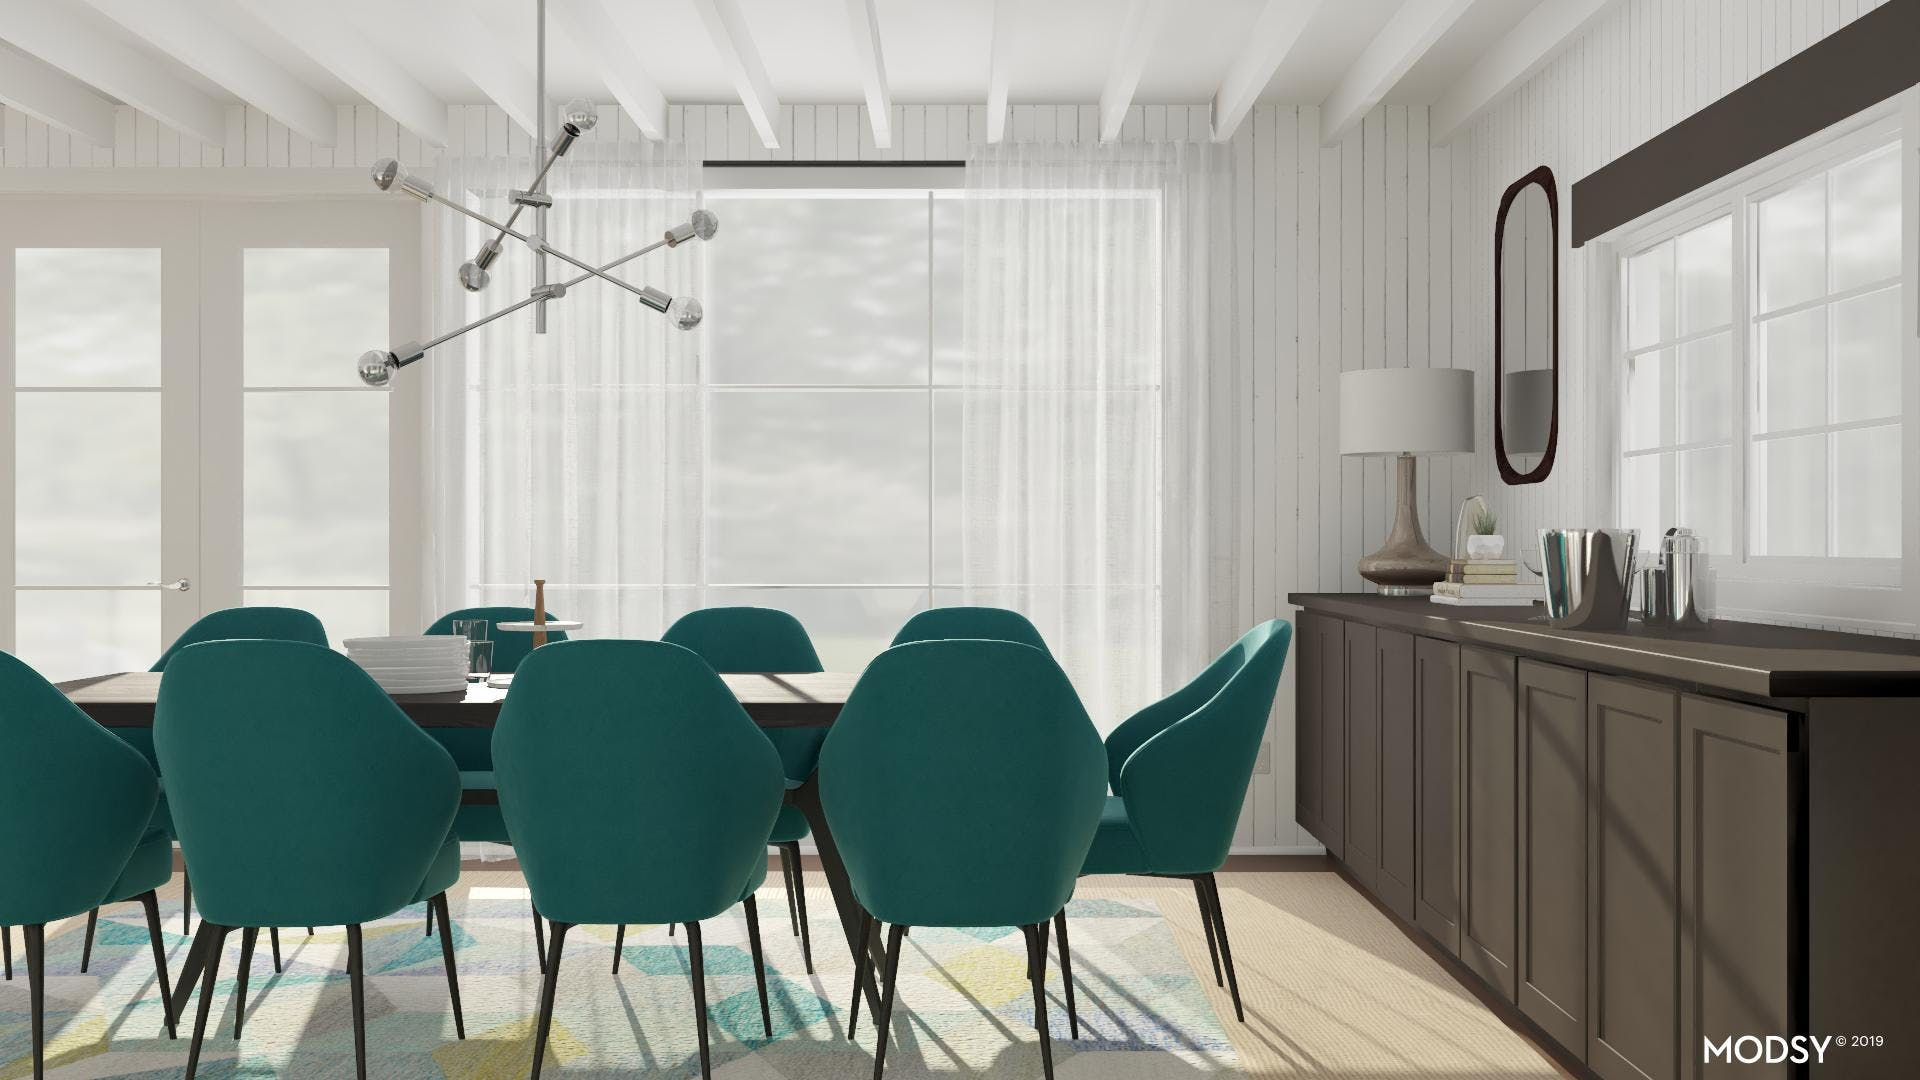 Clean Lines with a Pop of Green